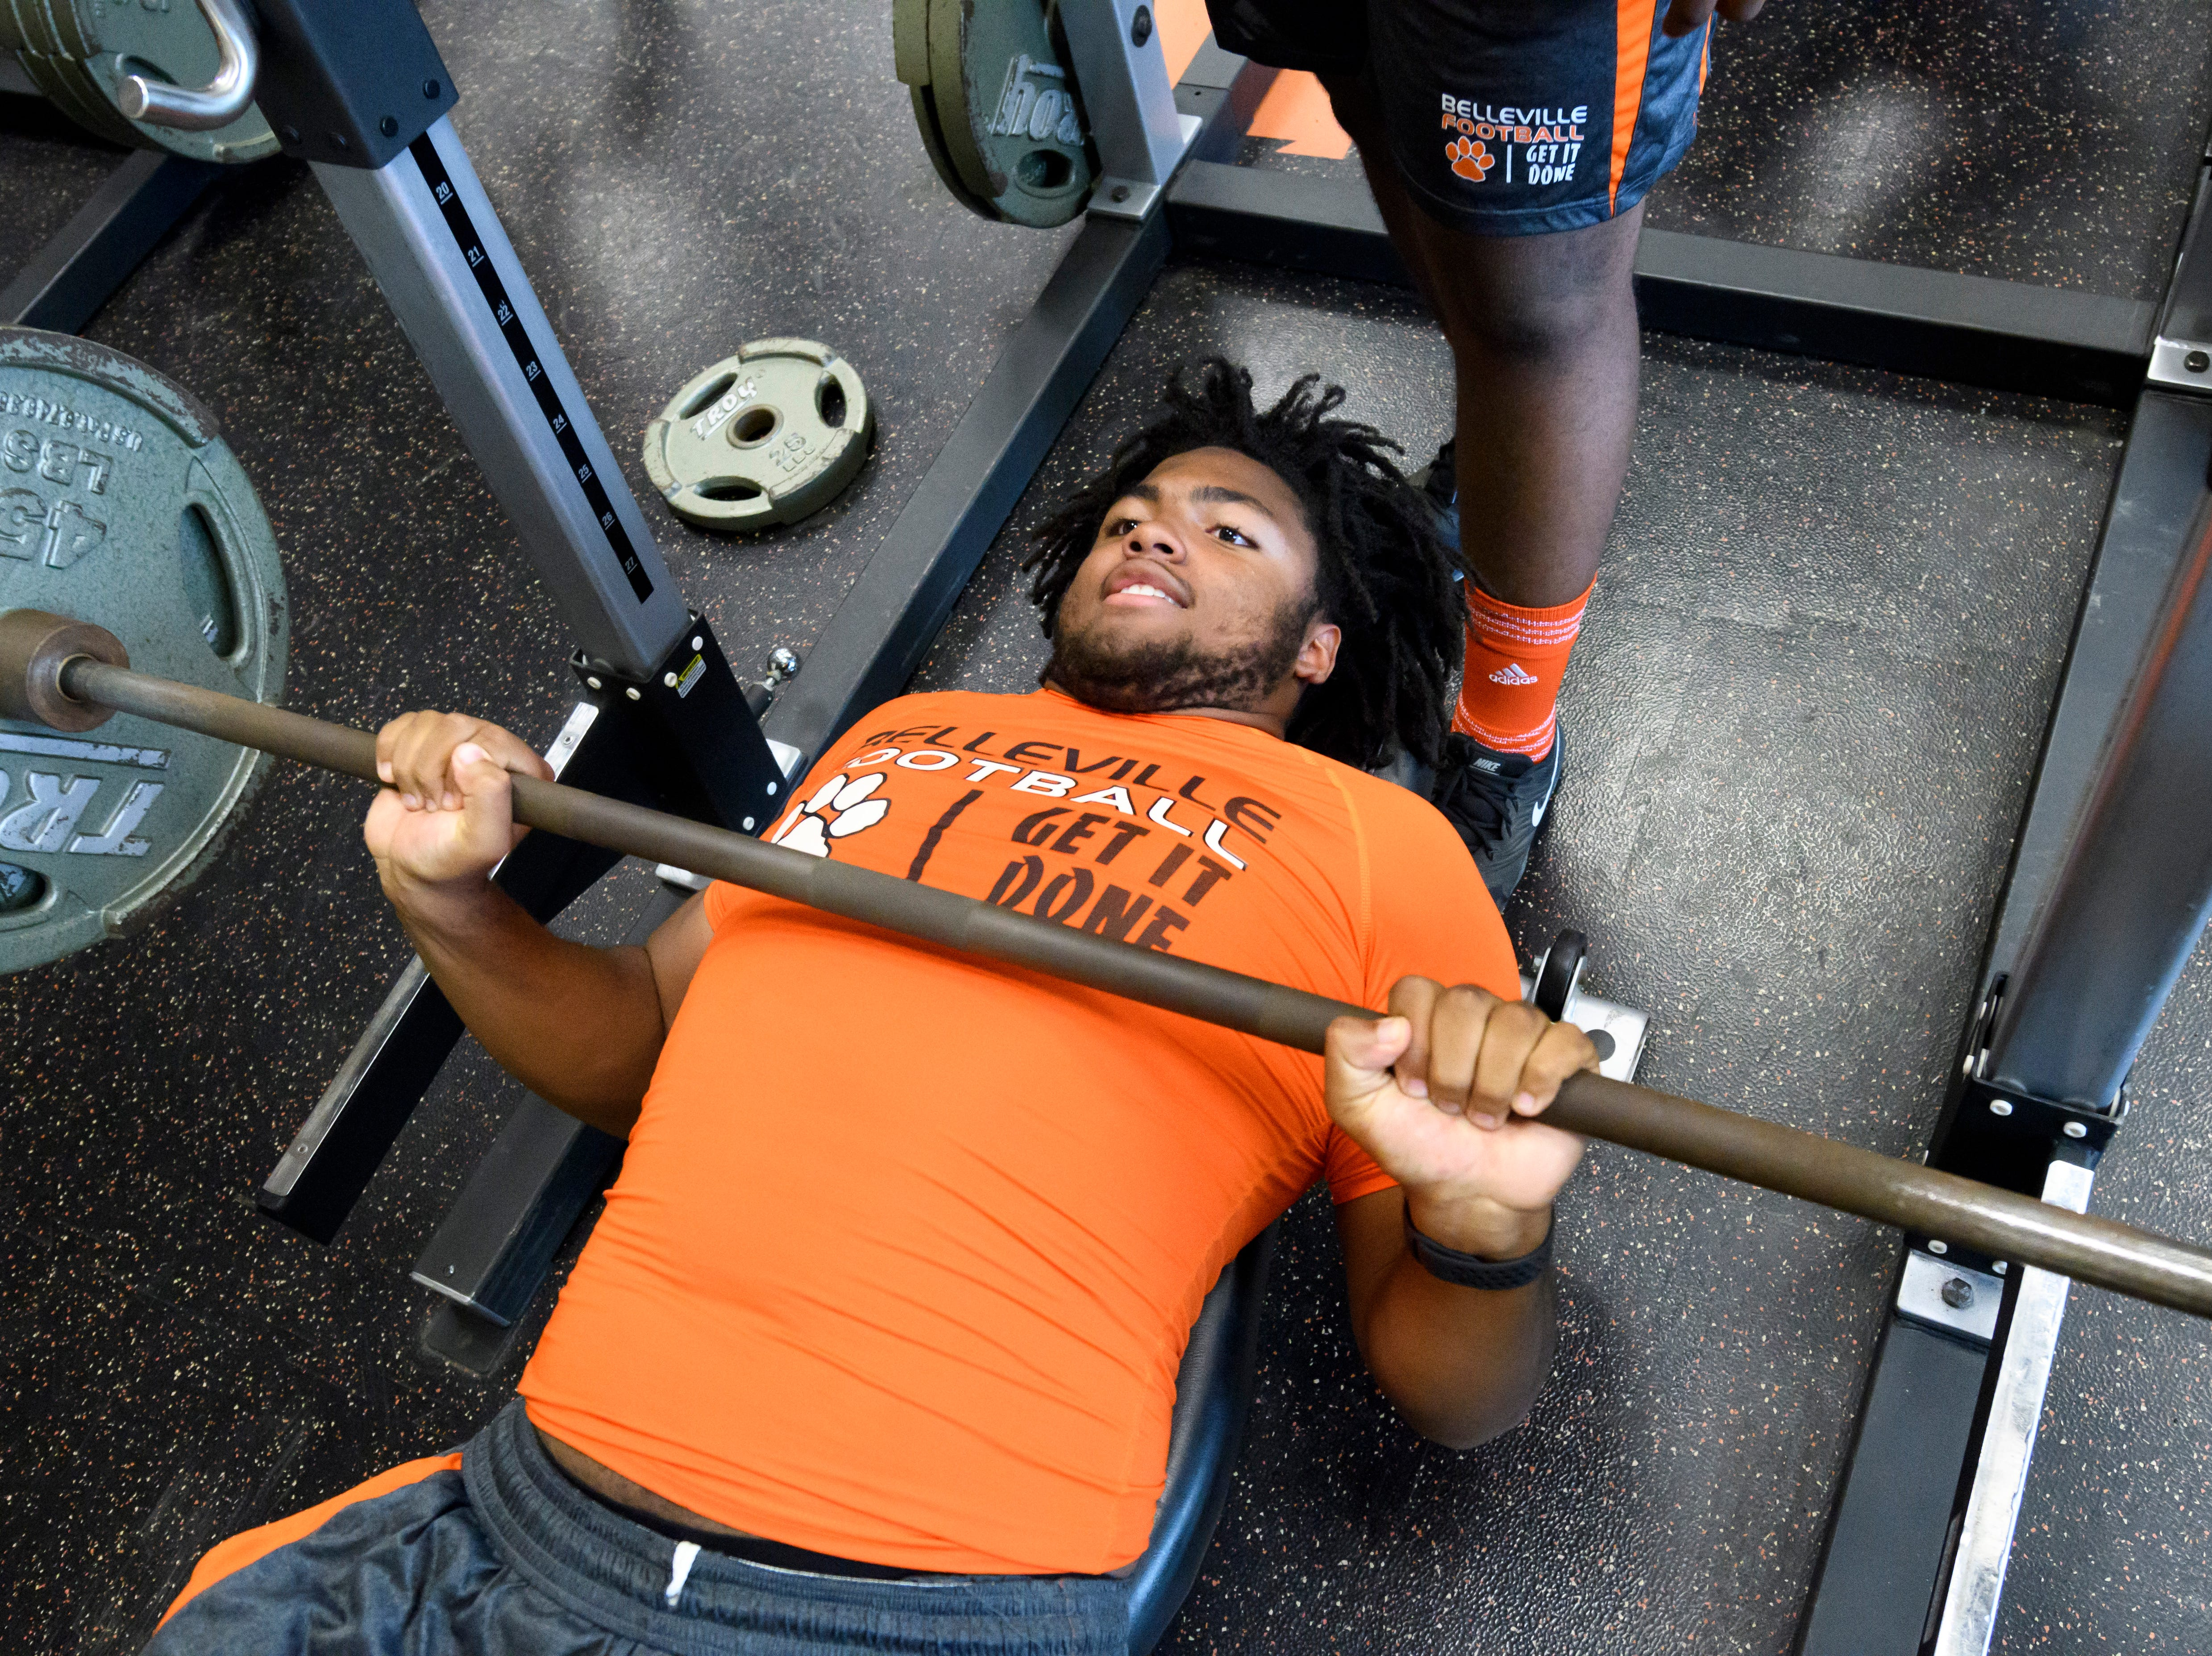 Belleville's Tyrece Woods works out in the weight room.